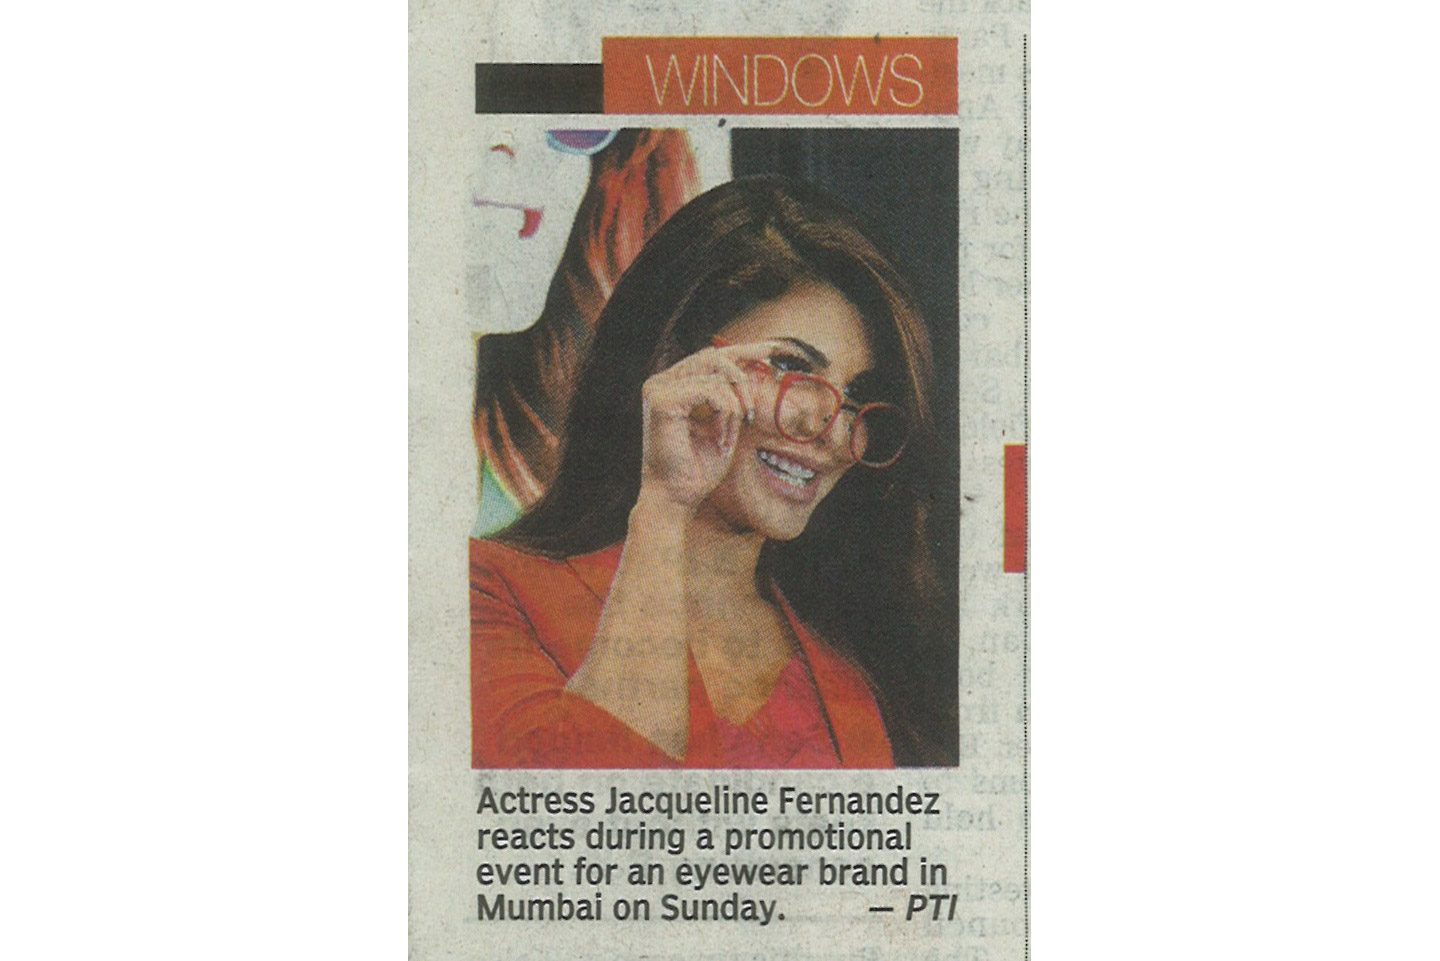 Jacqueline Fernandez during a promotional event of Nova Eyewear